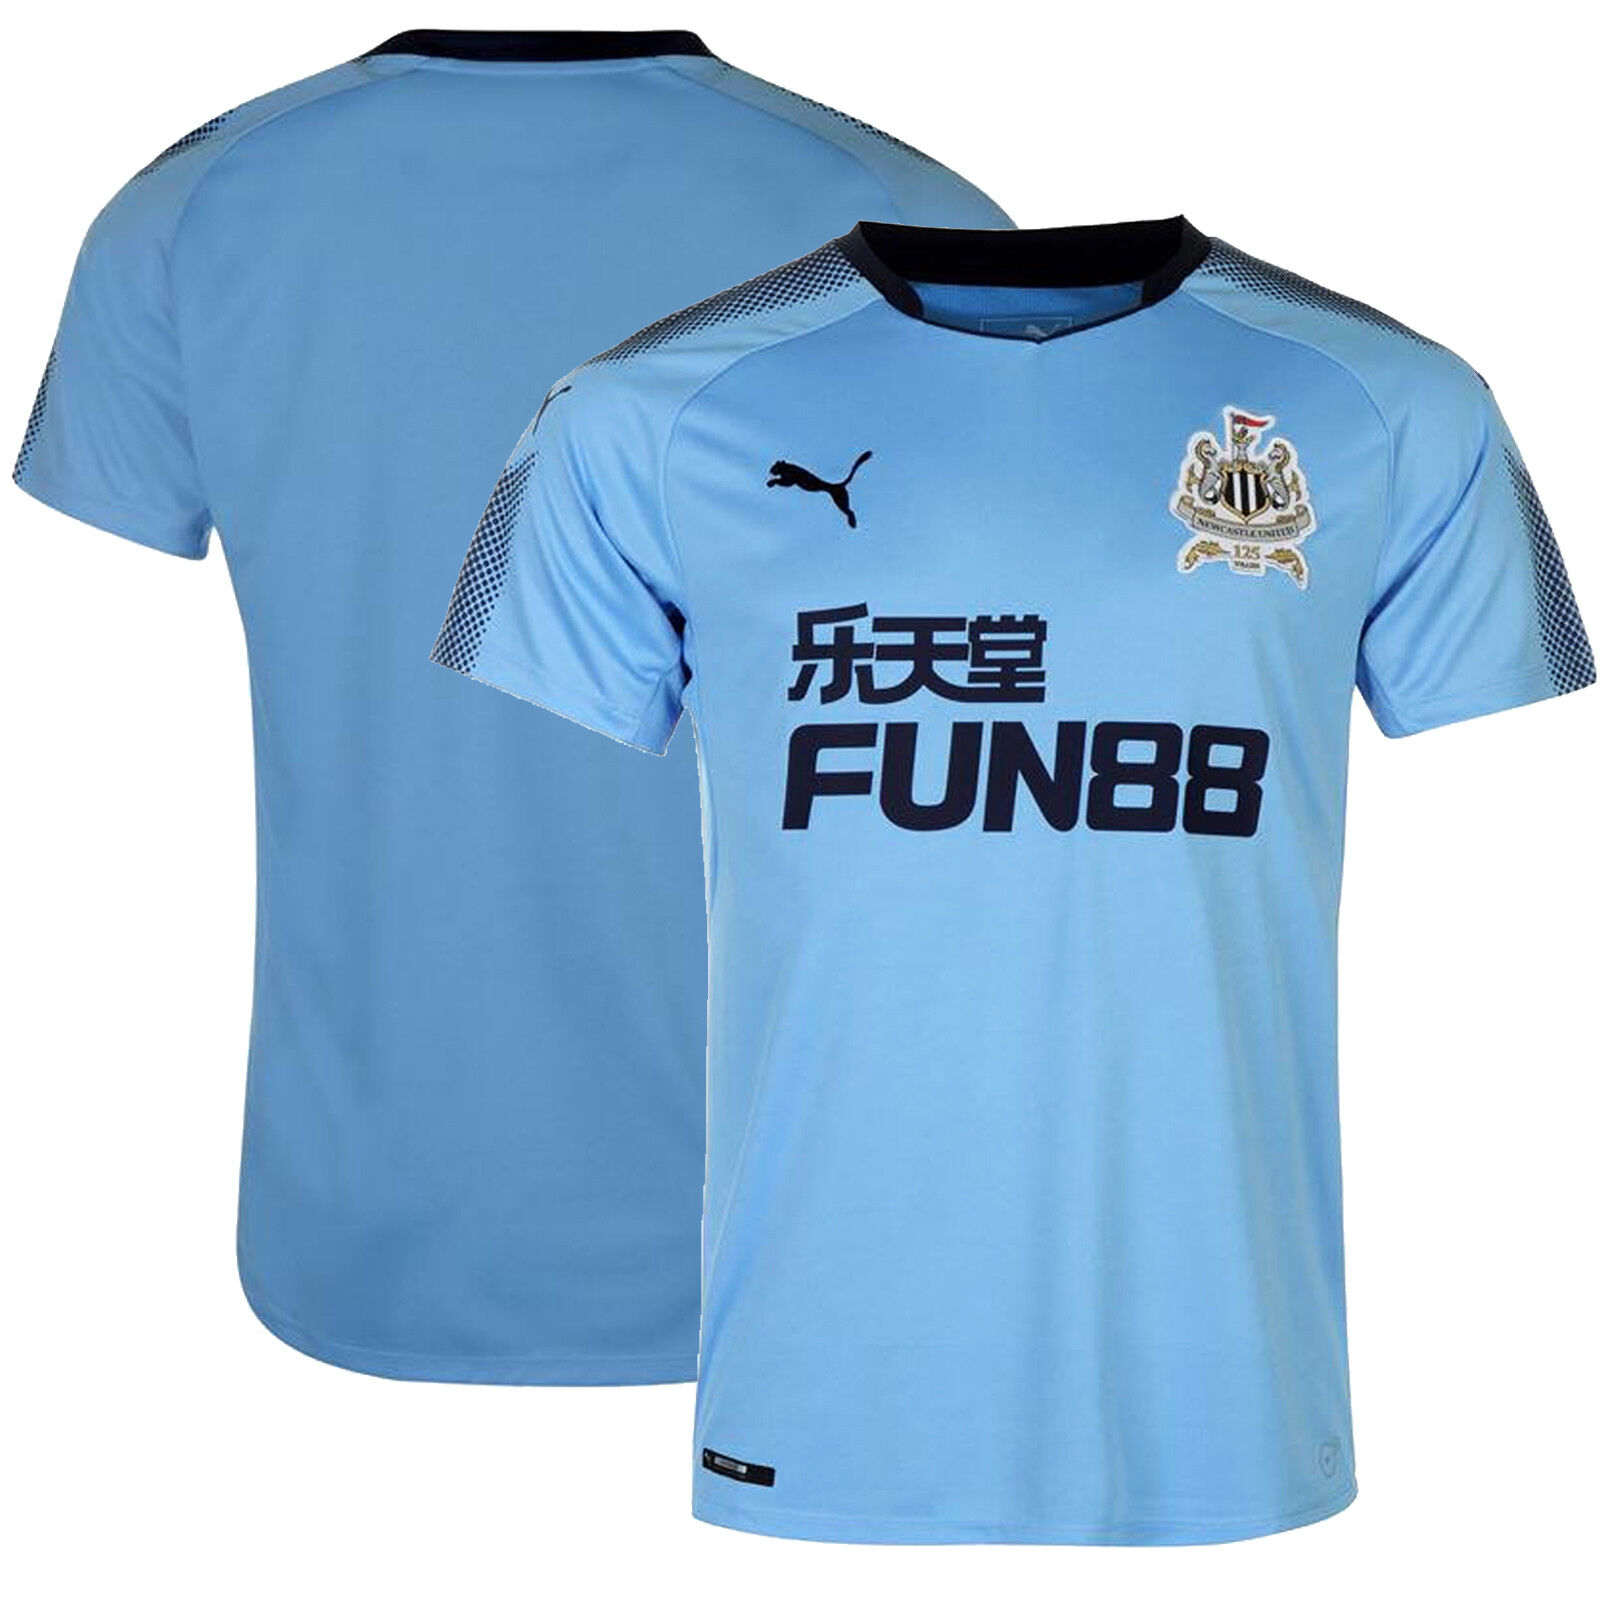 e5e093a1e Details about PUMA Newcastle United Away Football Replica Shirt New